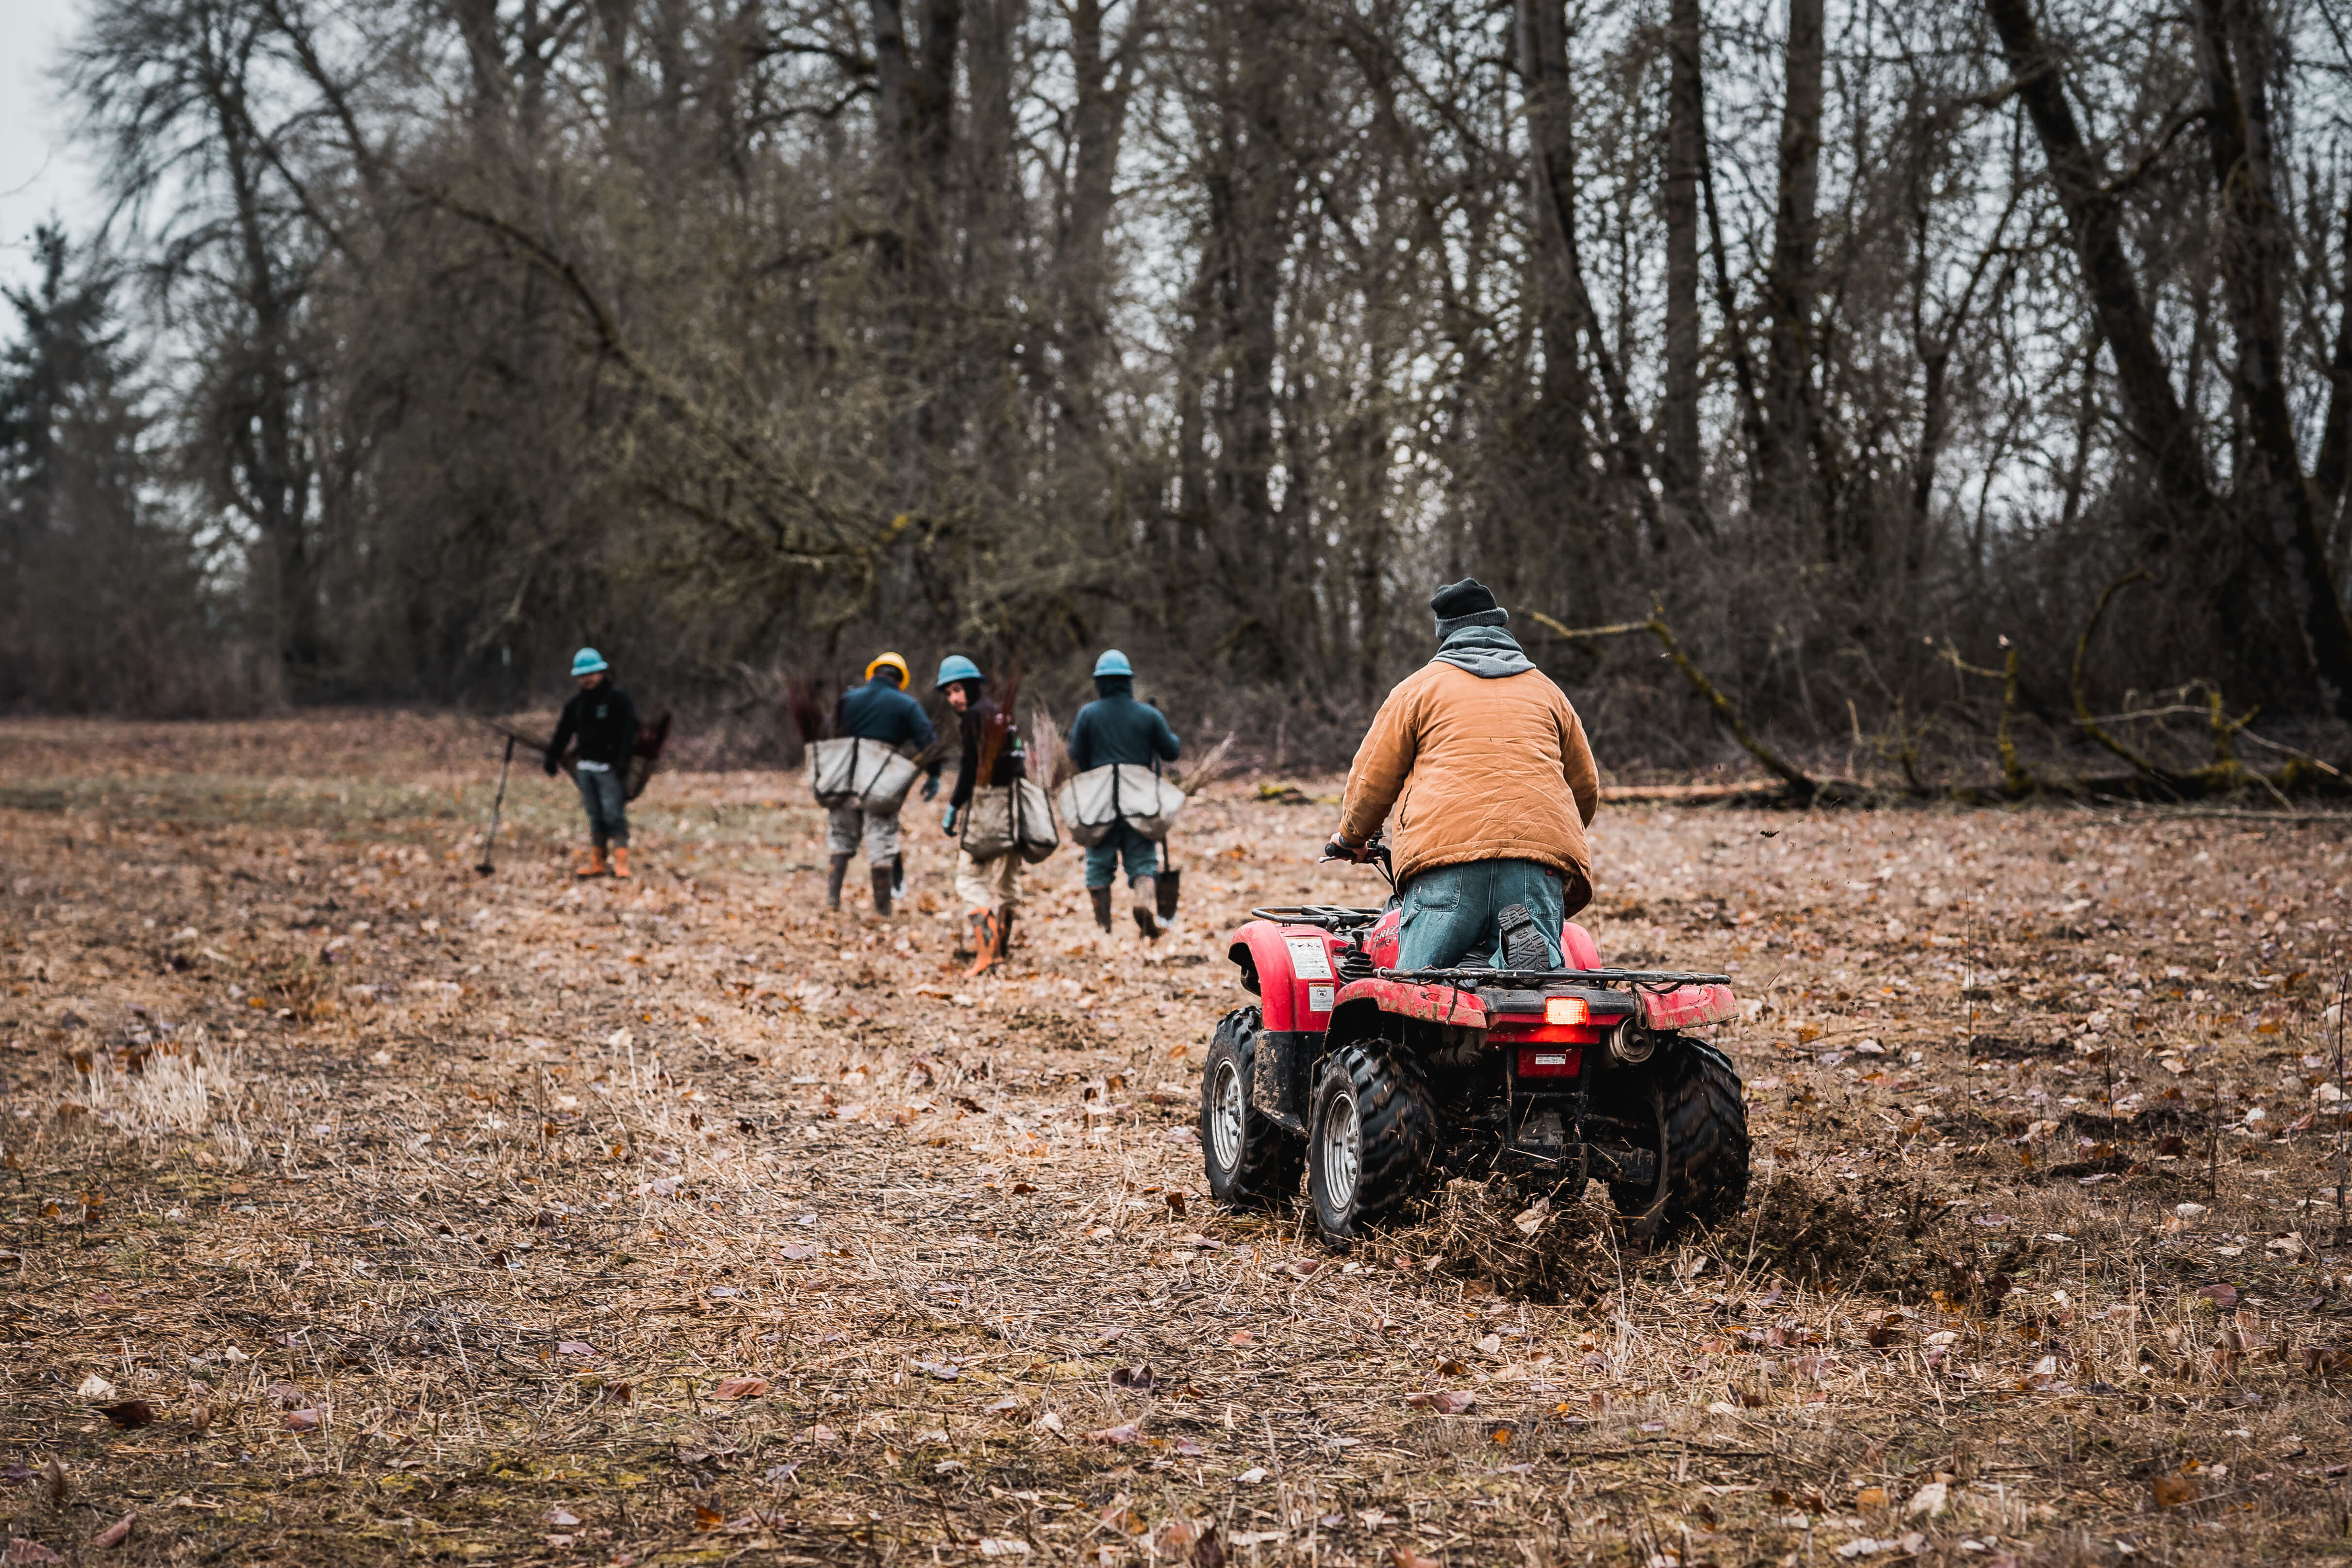 tree planters walking and riding an ATV